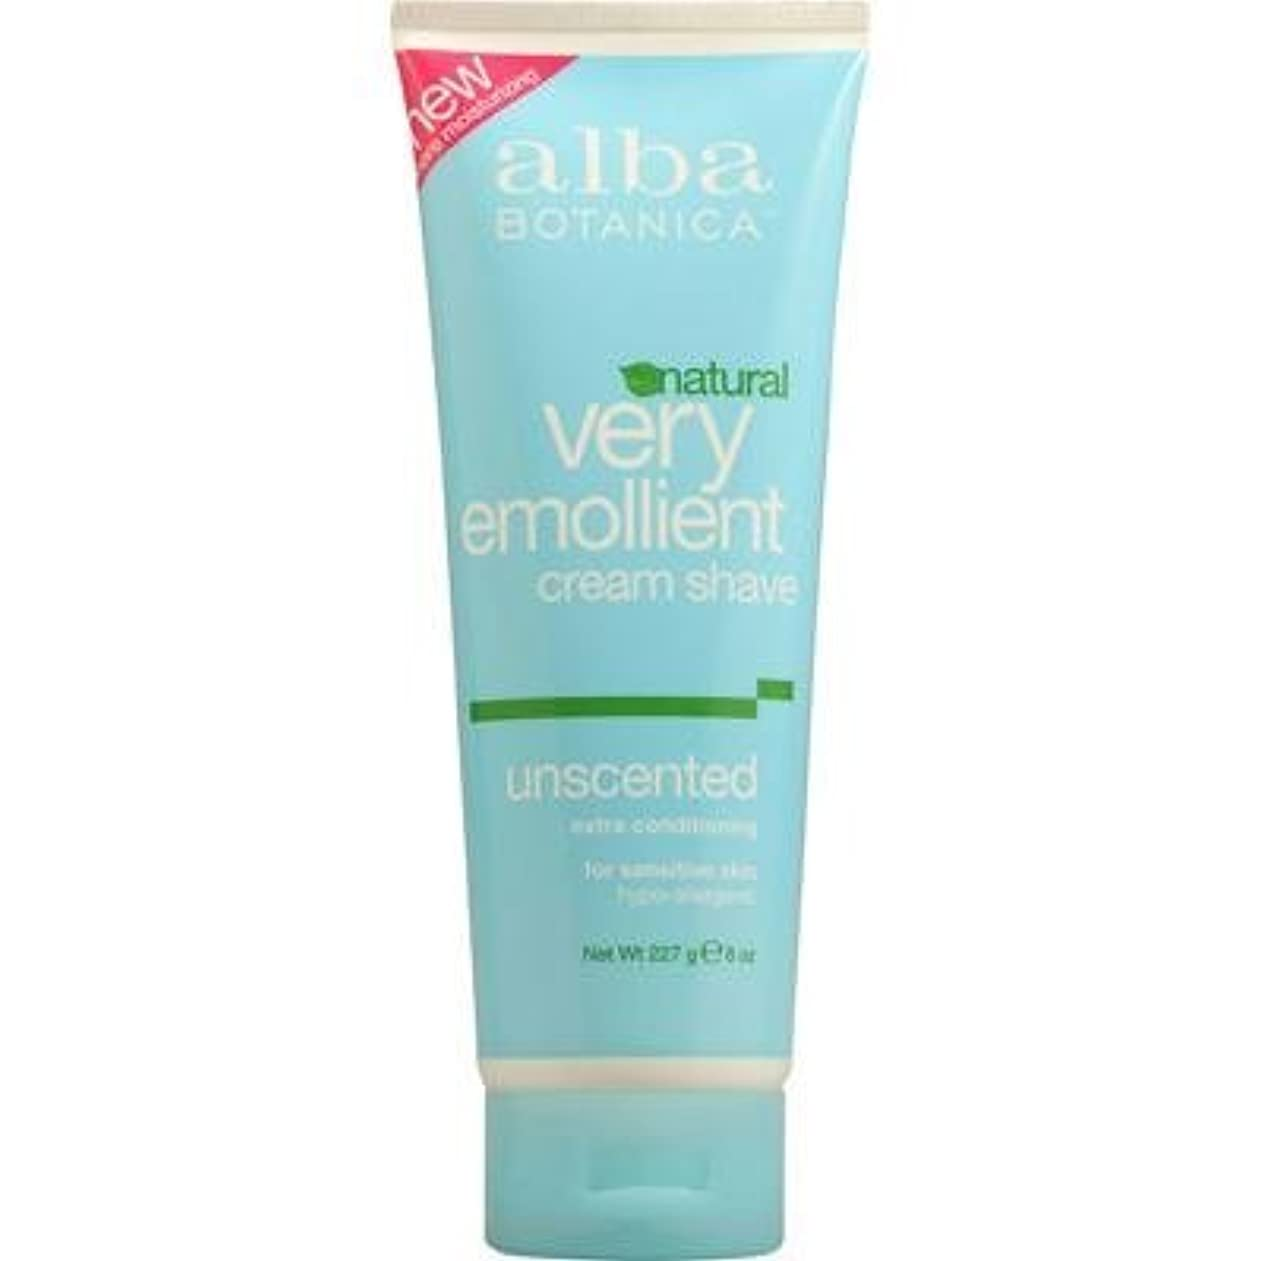 人生を作る酸豆腐Alba Botanica: Very Emollient Cream Shave Unscented 8 oz (3 pack) [並行輸入品]